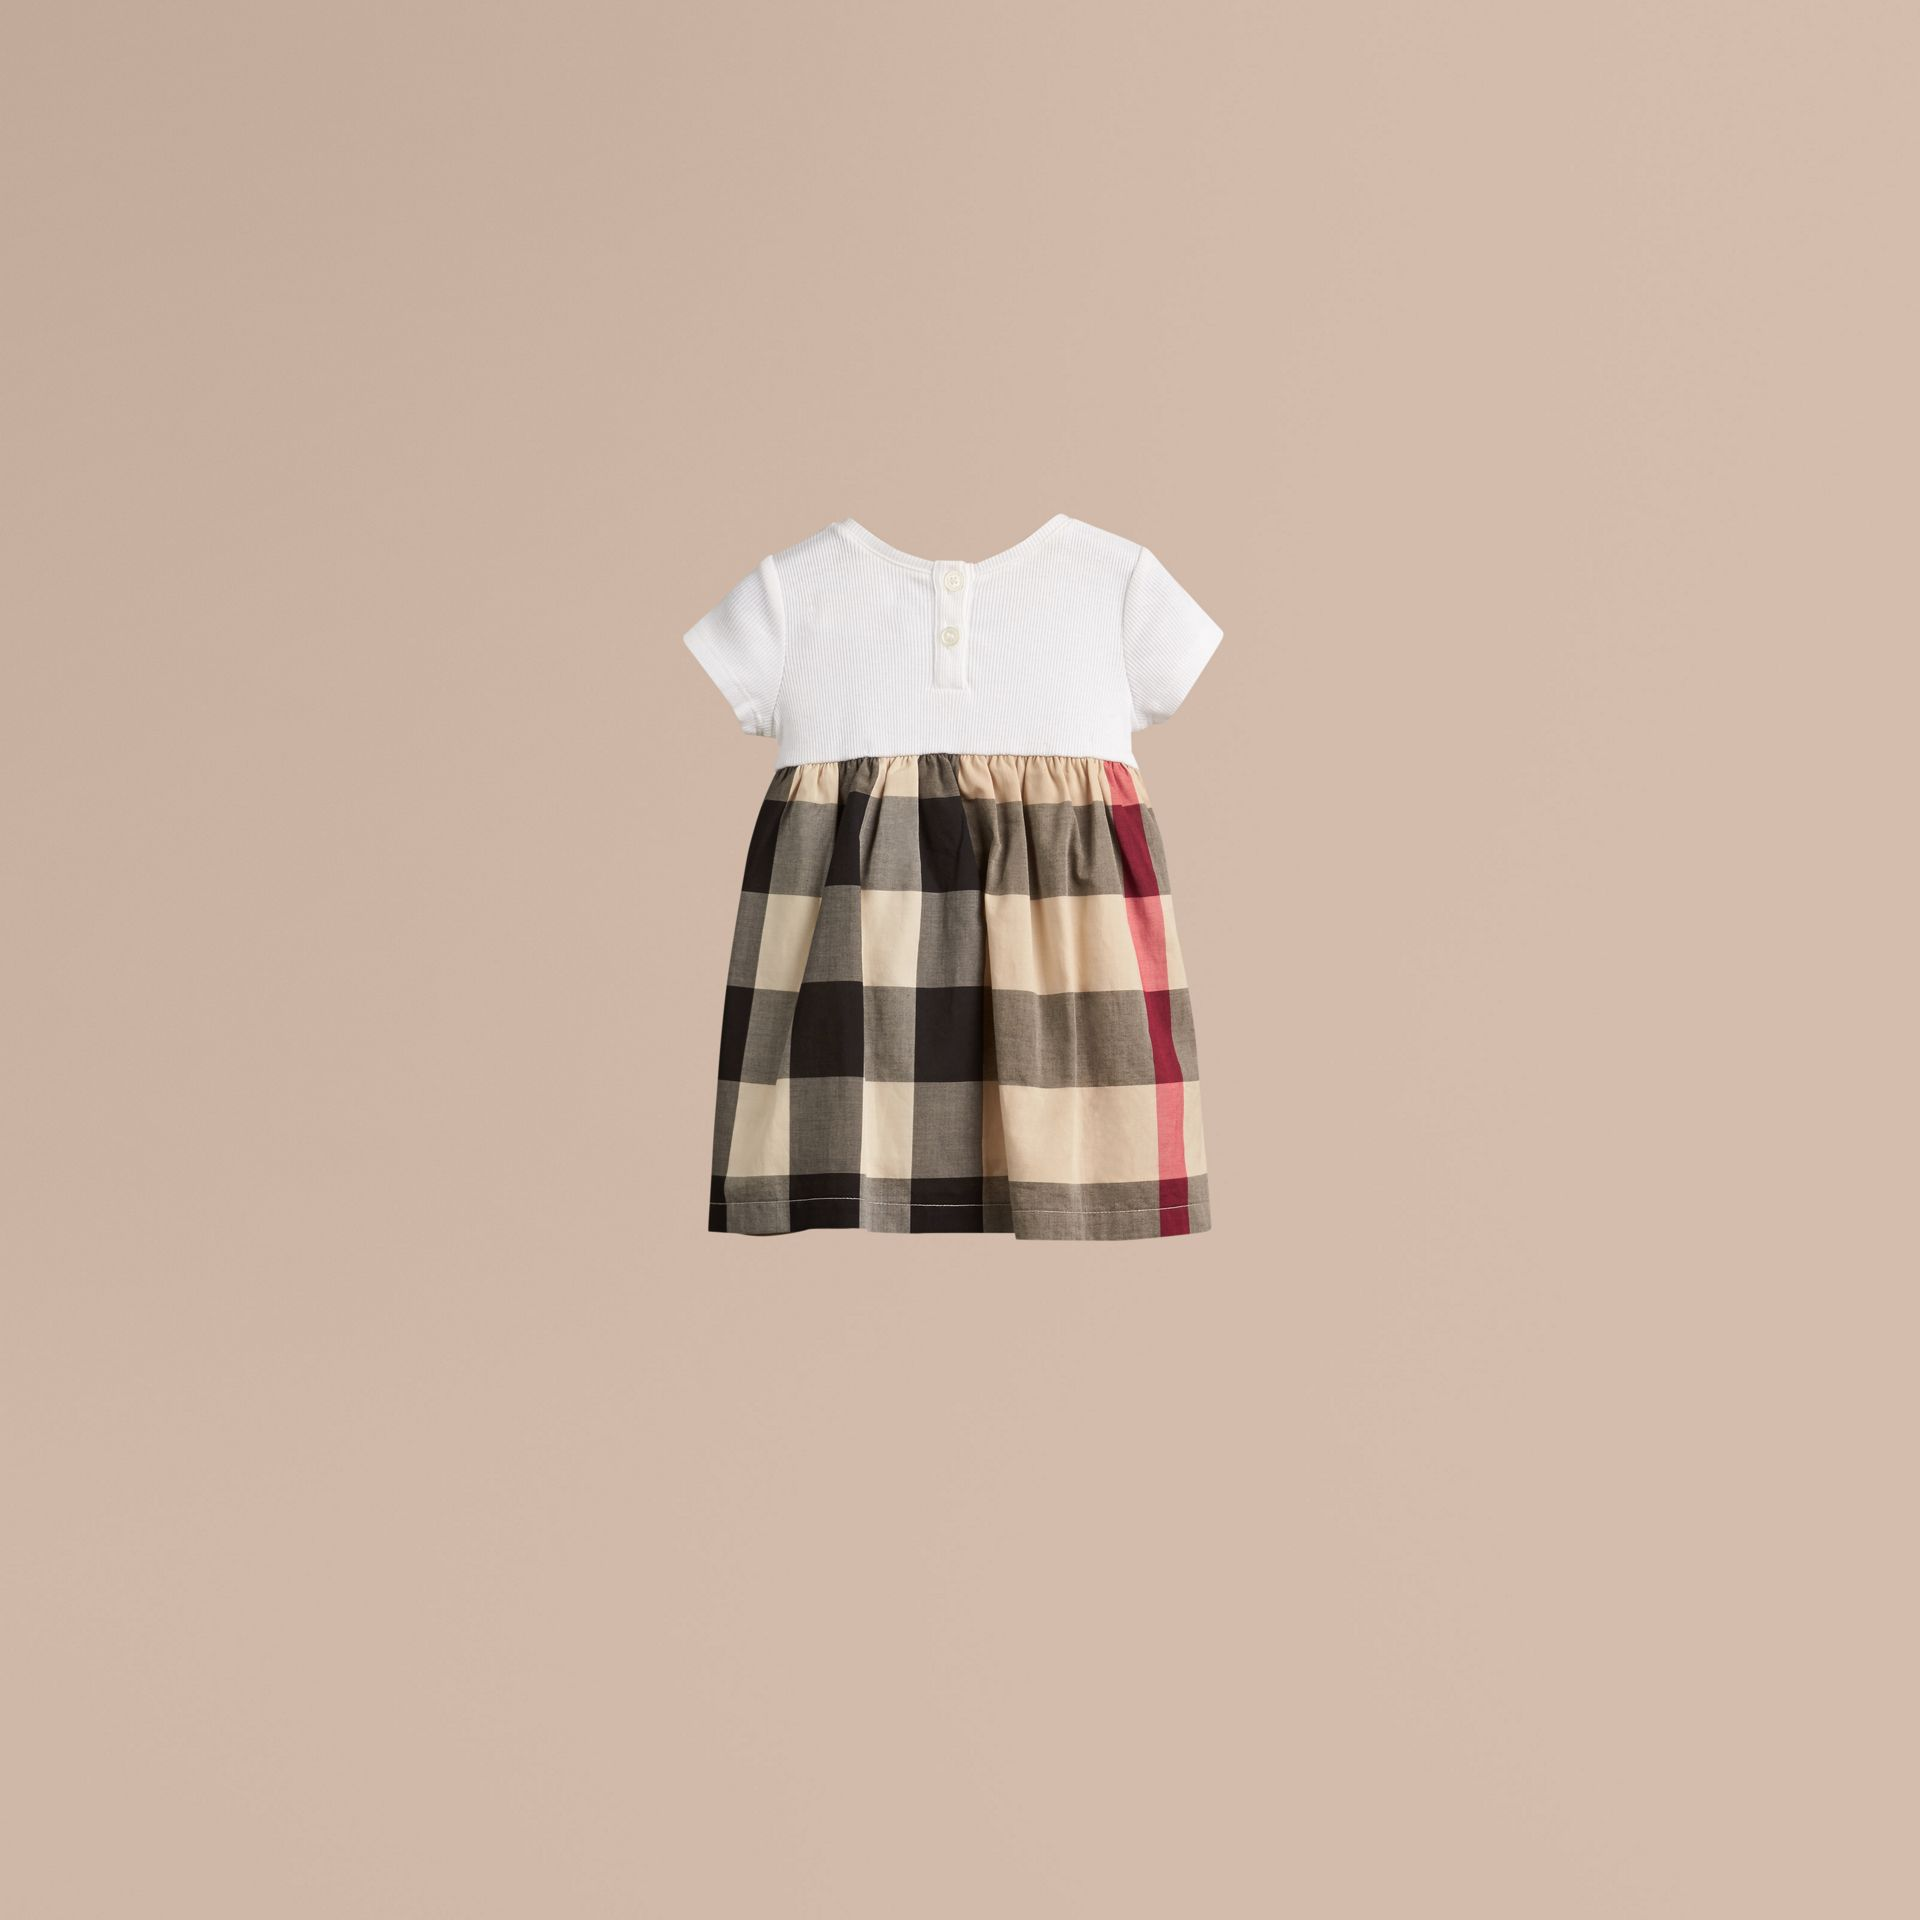 New classic check Check Cotton T-Shirt Dress - gallery image 3